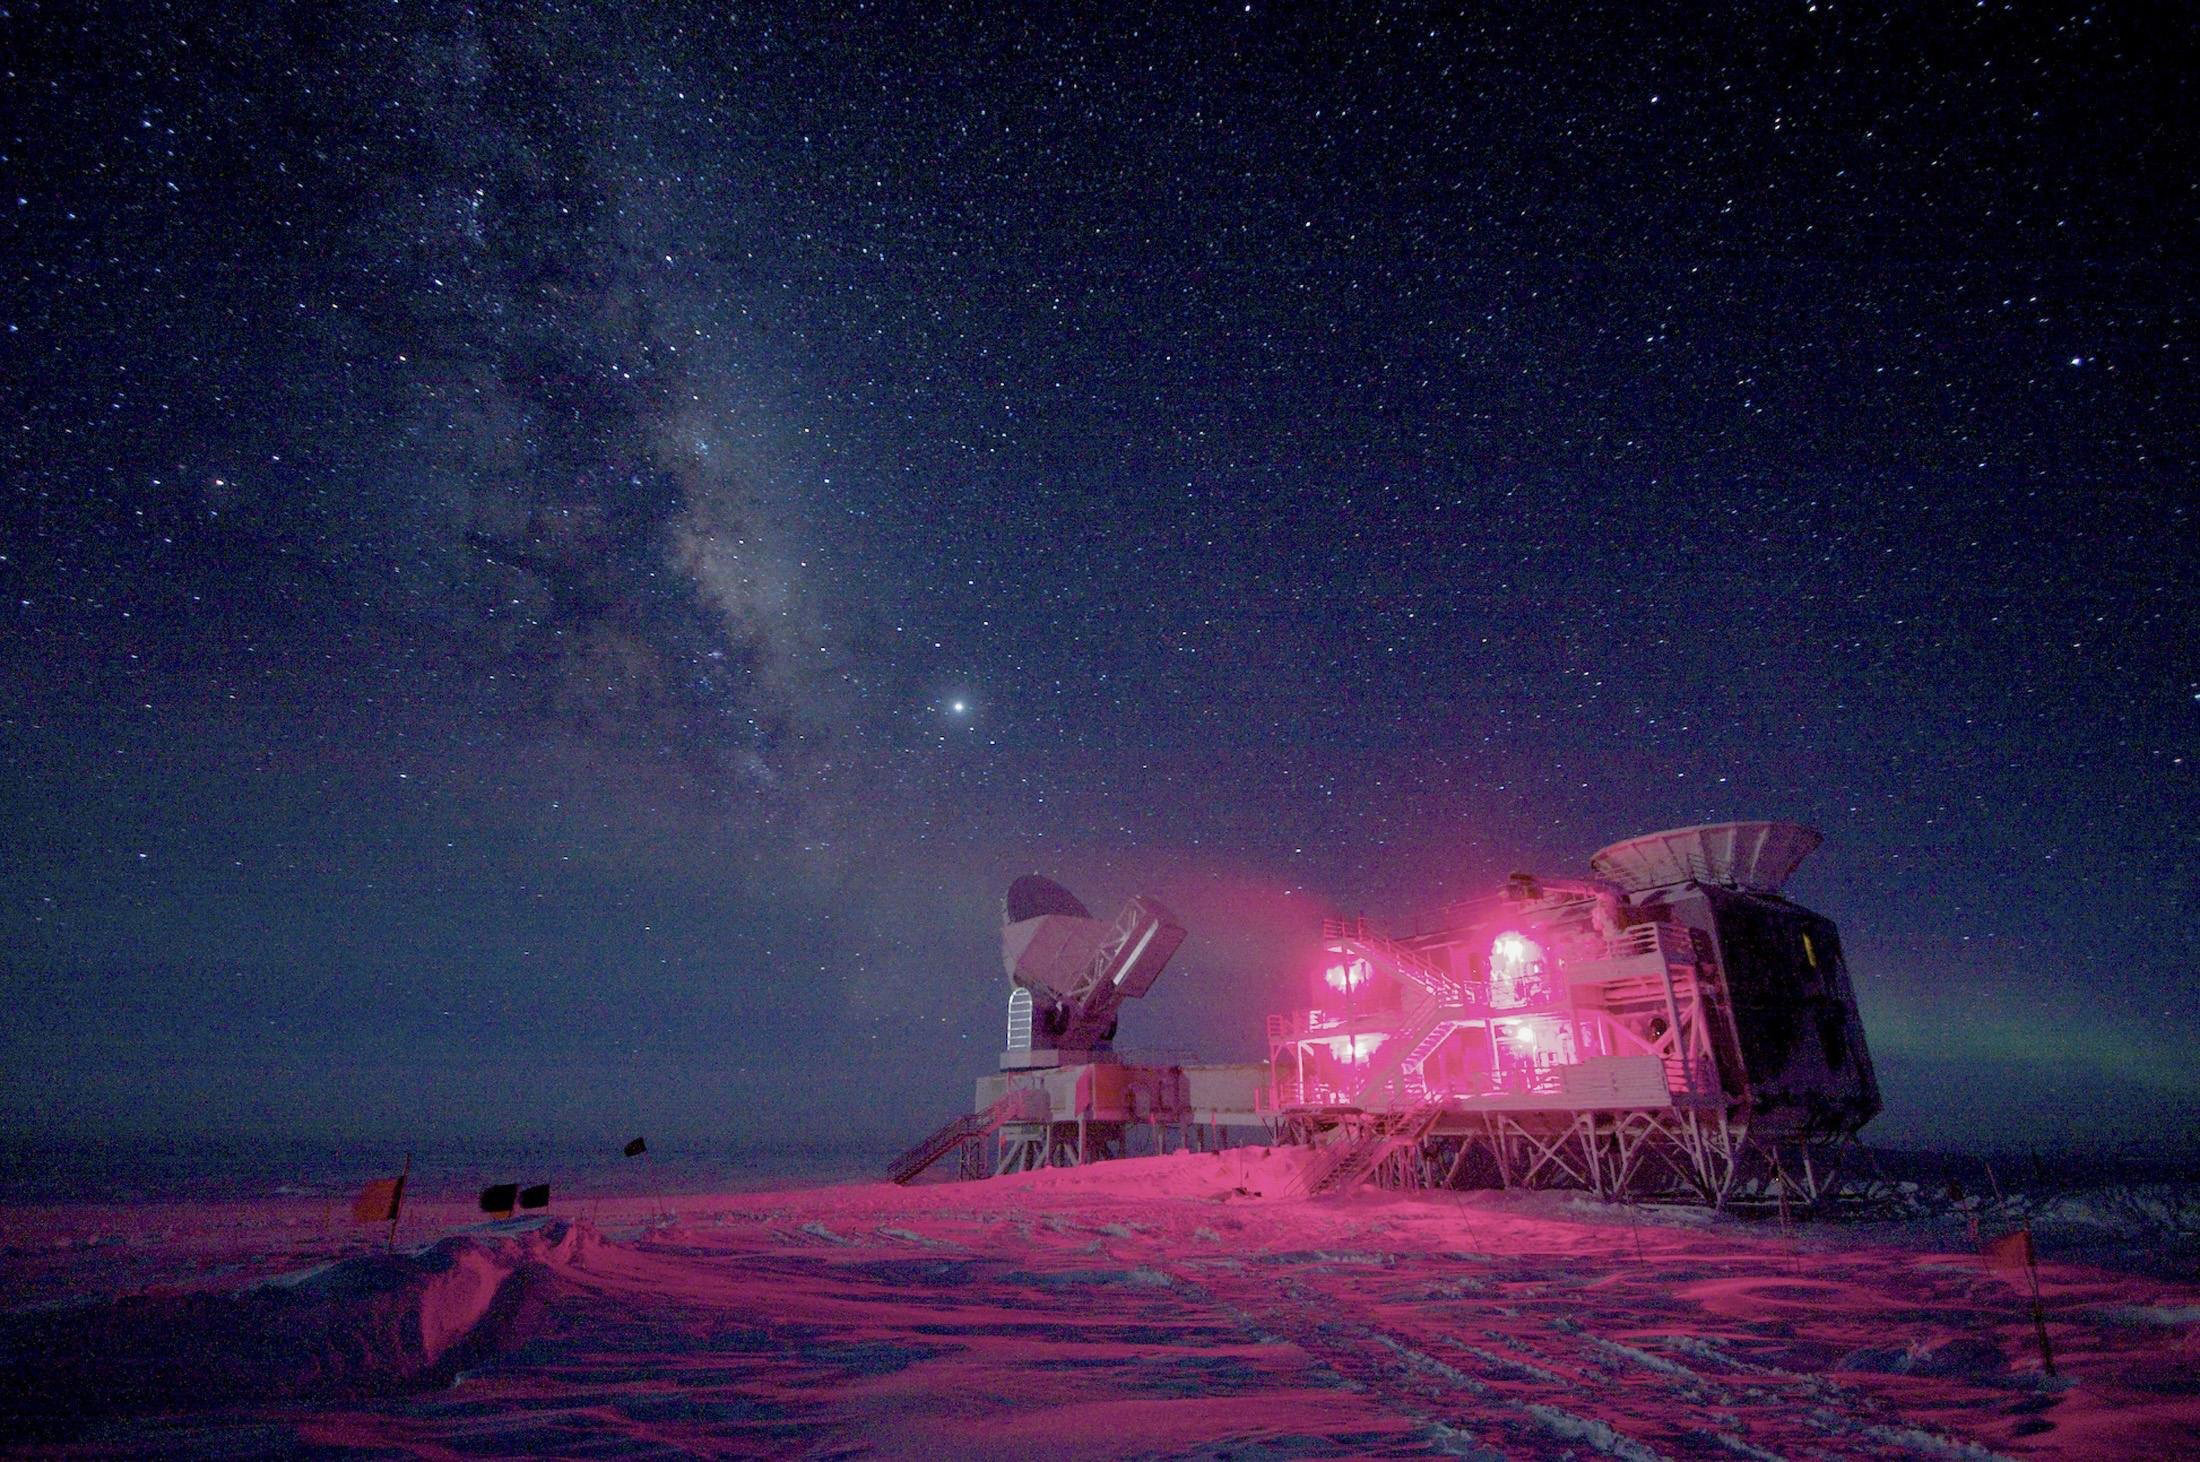 Eye on the Sky: The BICEP2 Telescope at the South Pole.